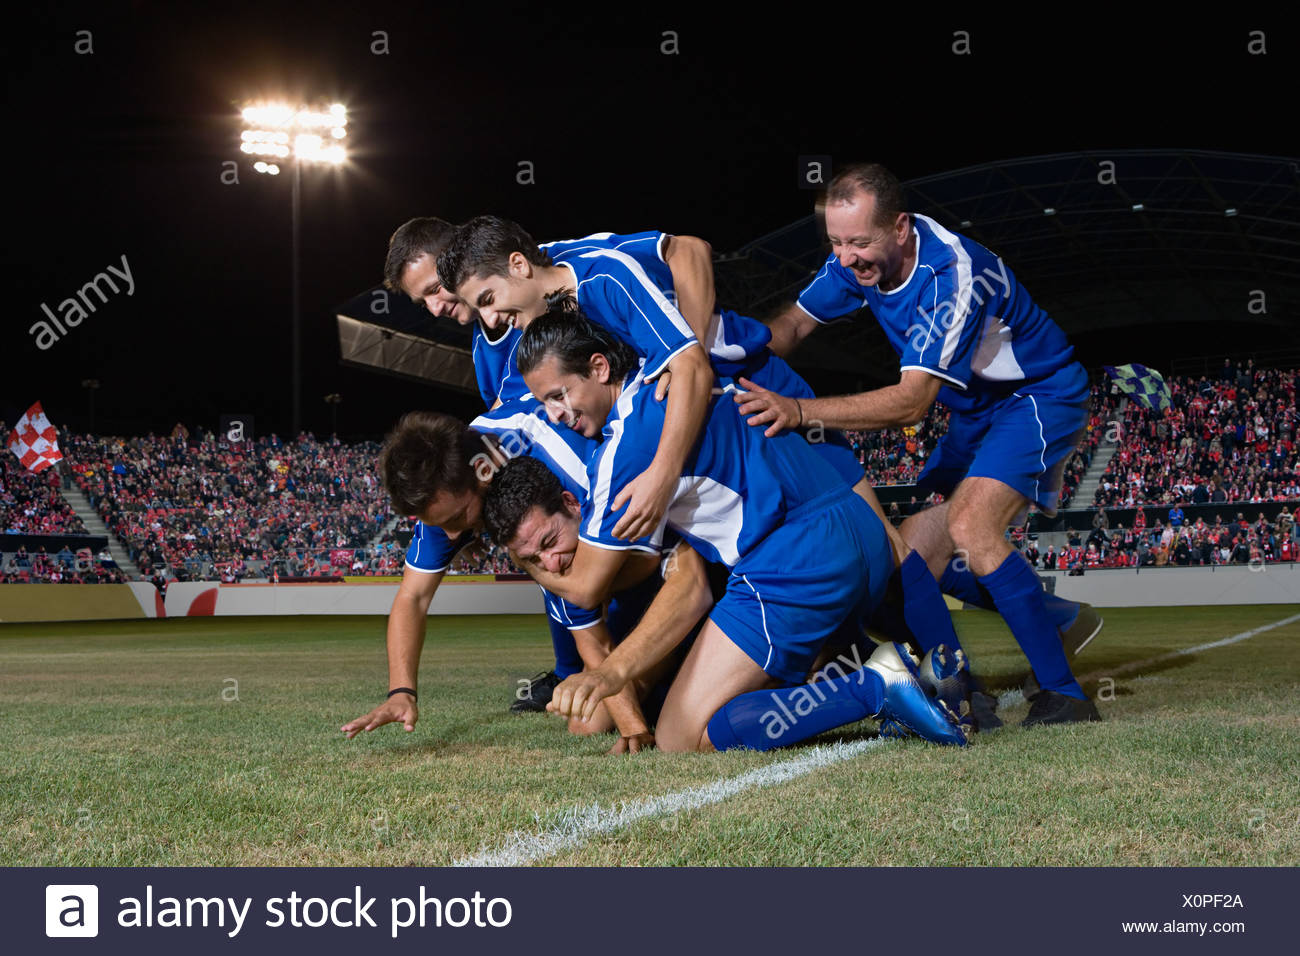 Football team celebrating - Stock Image